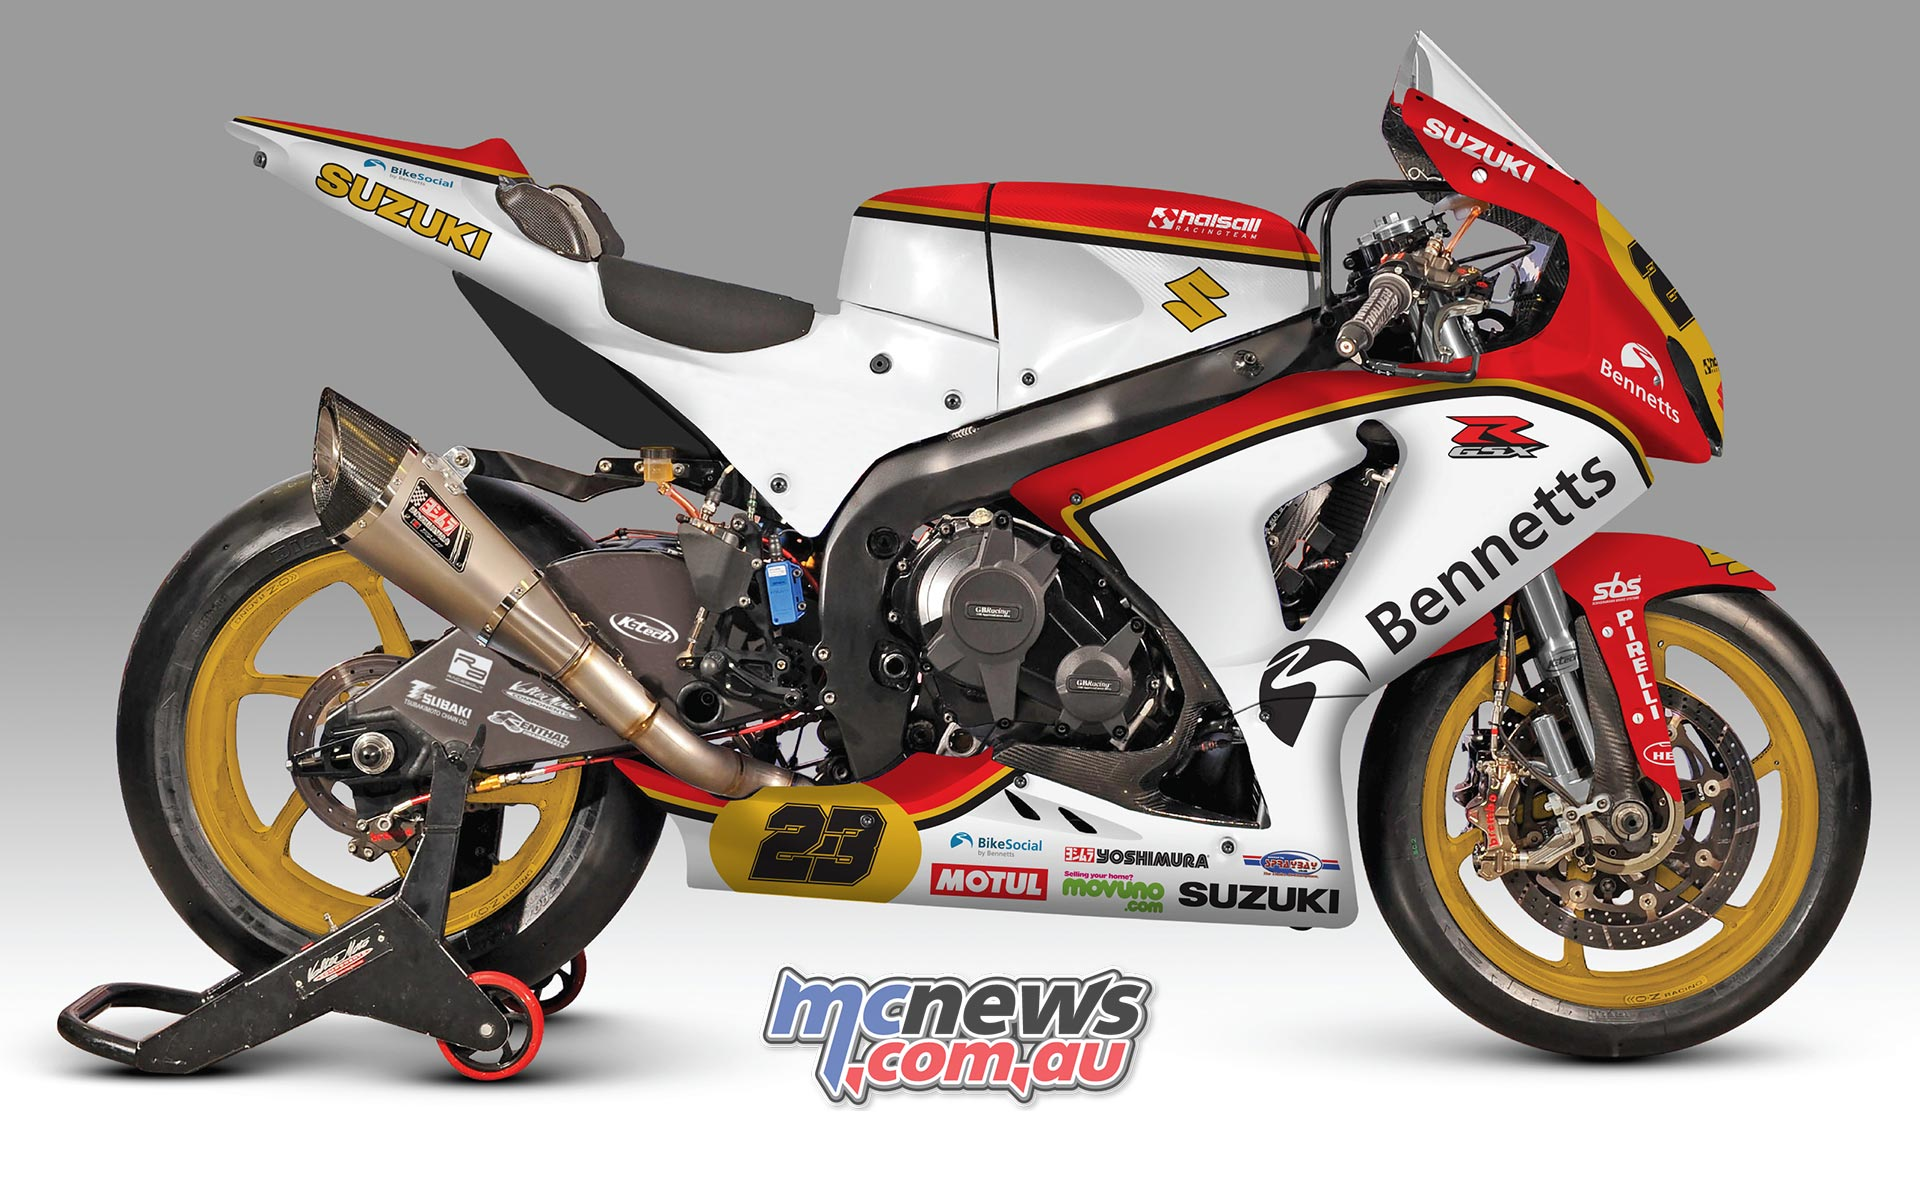 Barry Sheene inspired livery for the Bennetts Suzuki GSX-R1000 at Brands Hatch